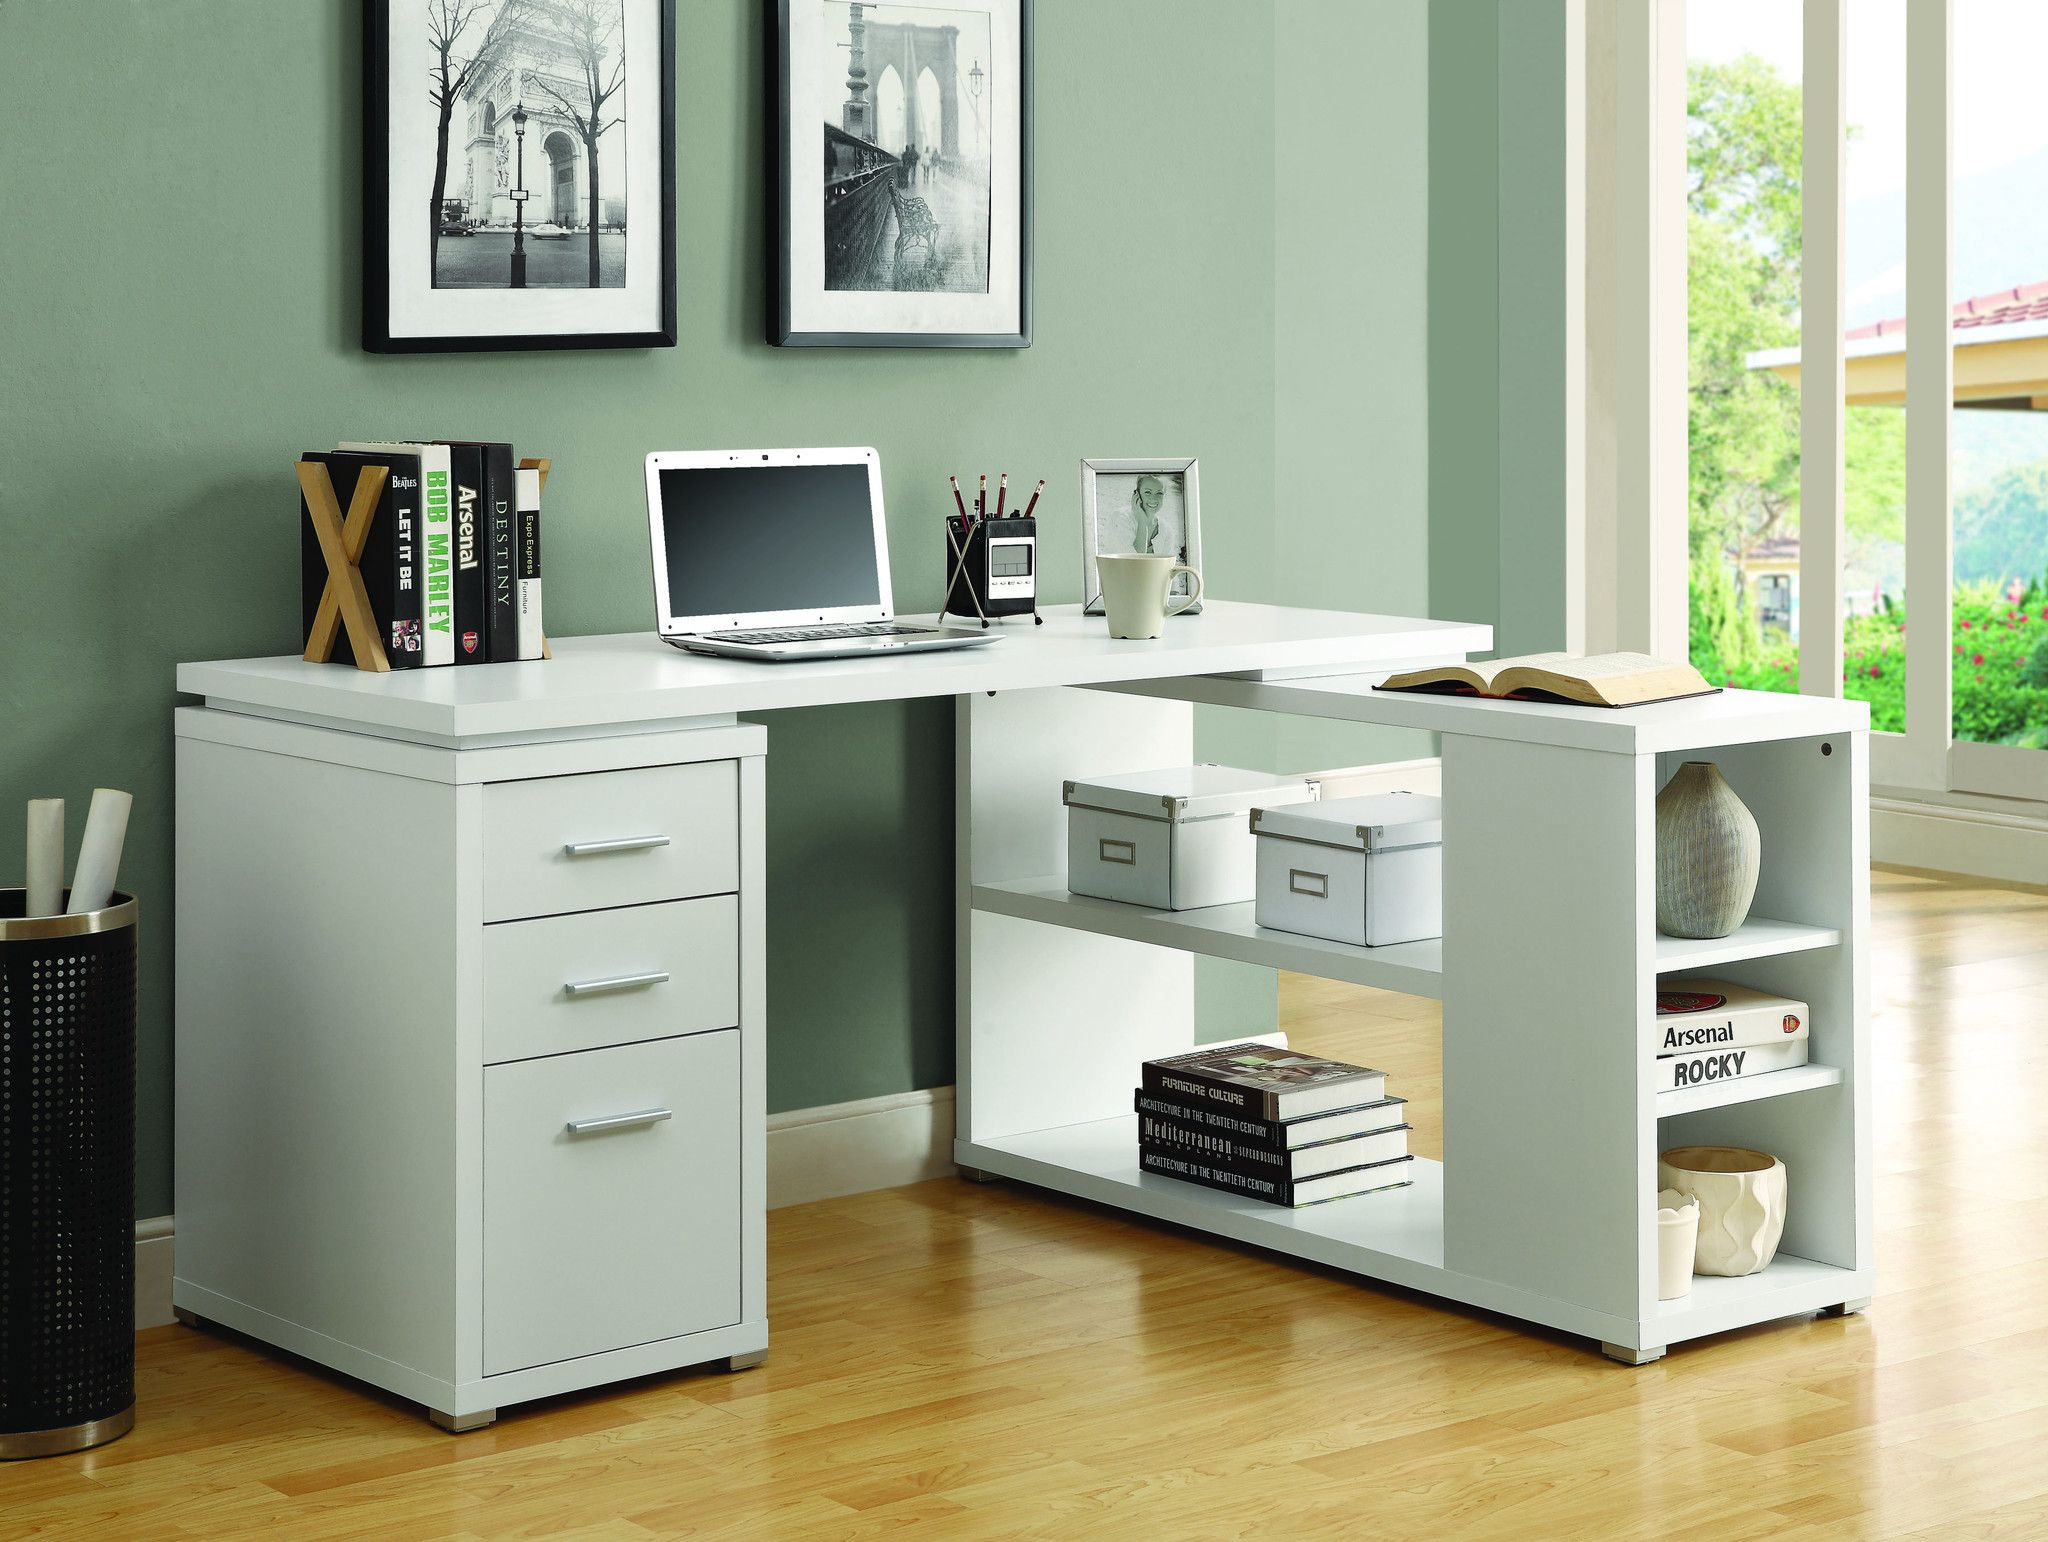 Open Shelving Storage, Enclosed Drawer Storage, Huge Desk Top Space, And  All Finished In A Sweet White Finish   And All Constructed With Quality  Materials ...